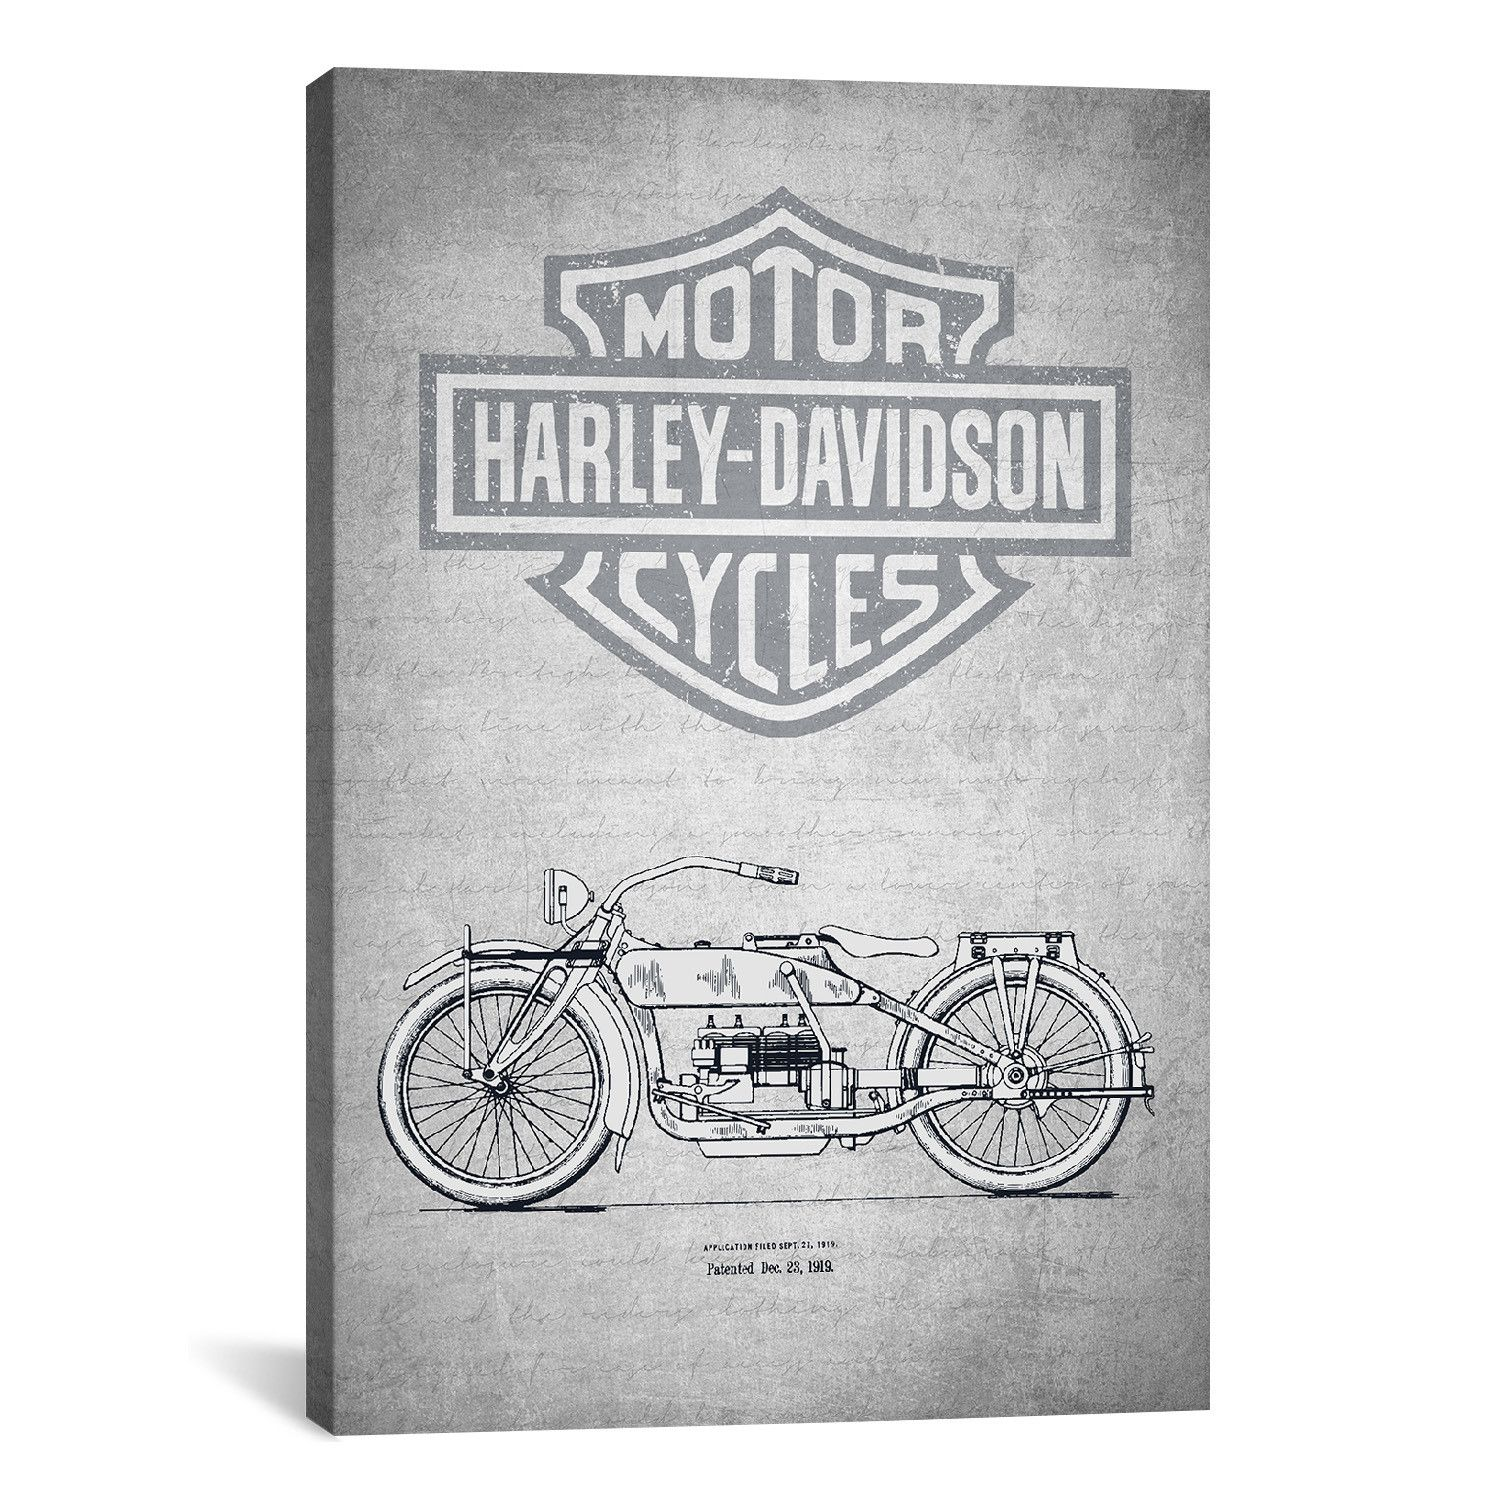 Harley Davidson Motorcycles I Retrieved from the archives of the